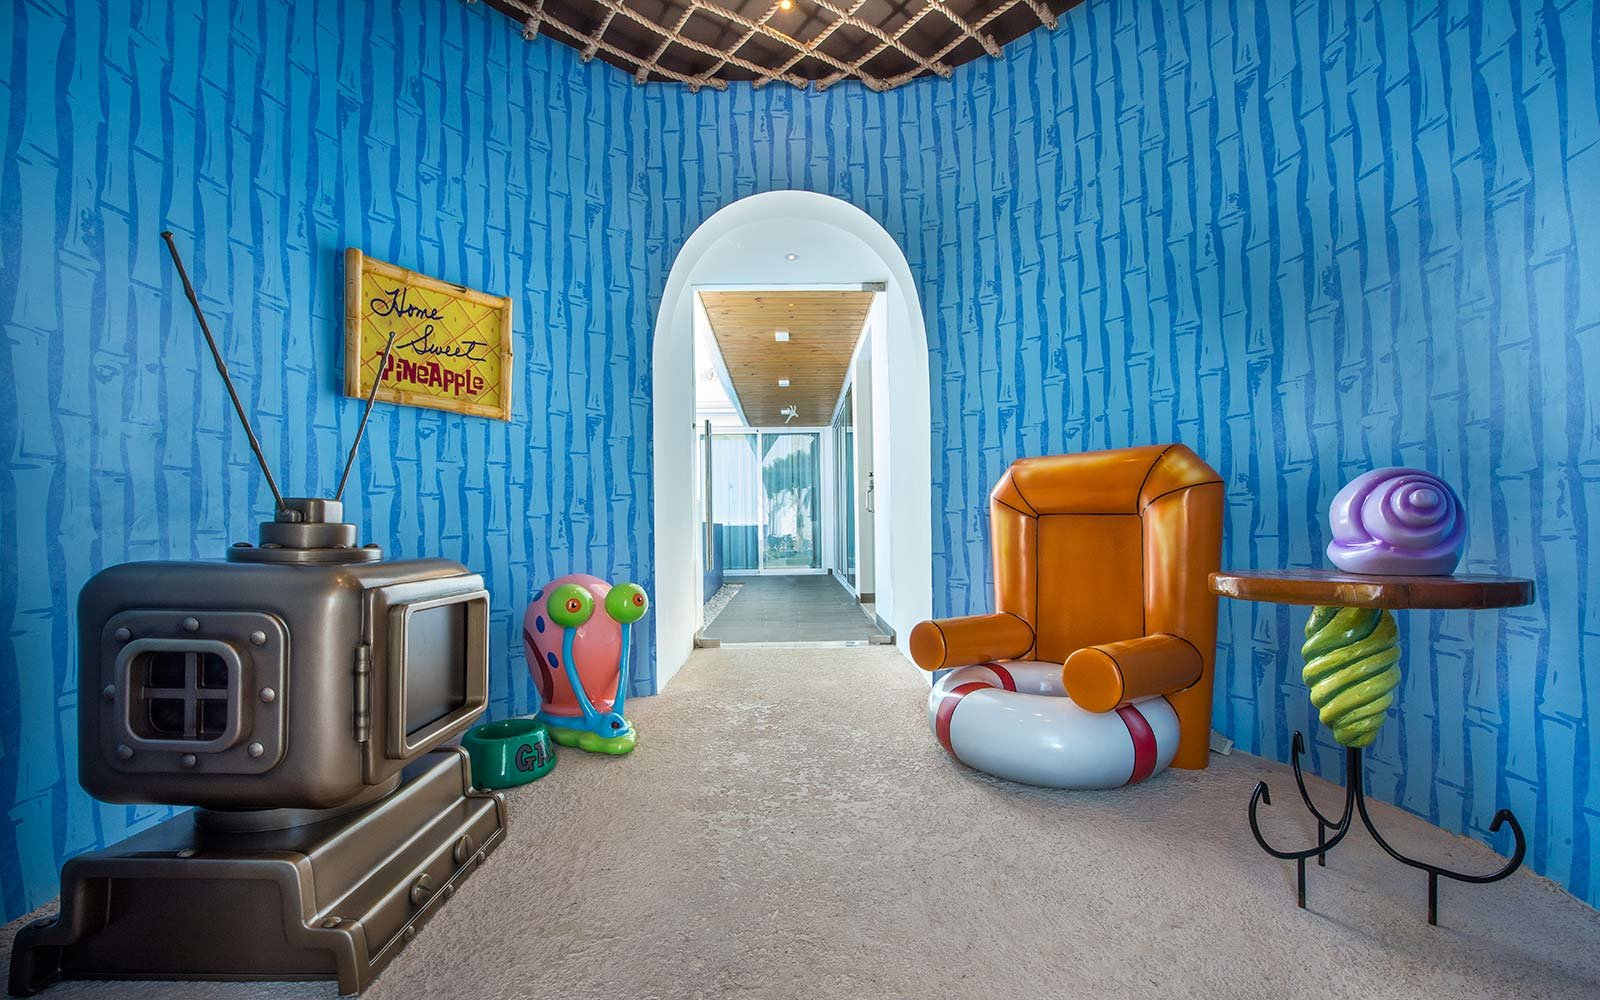 Movie Themed Hotels Spongebob Squarepants Nickelodeon Punta Cana